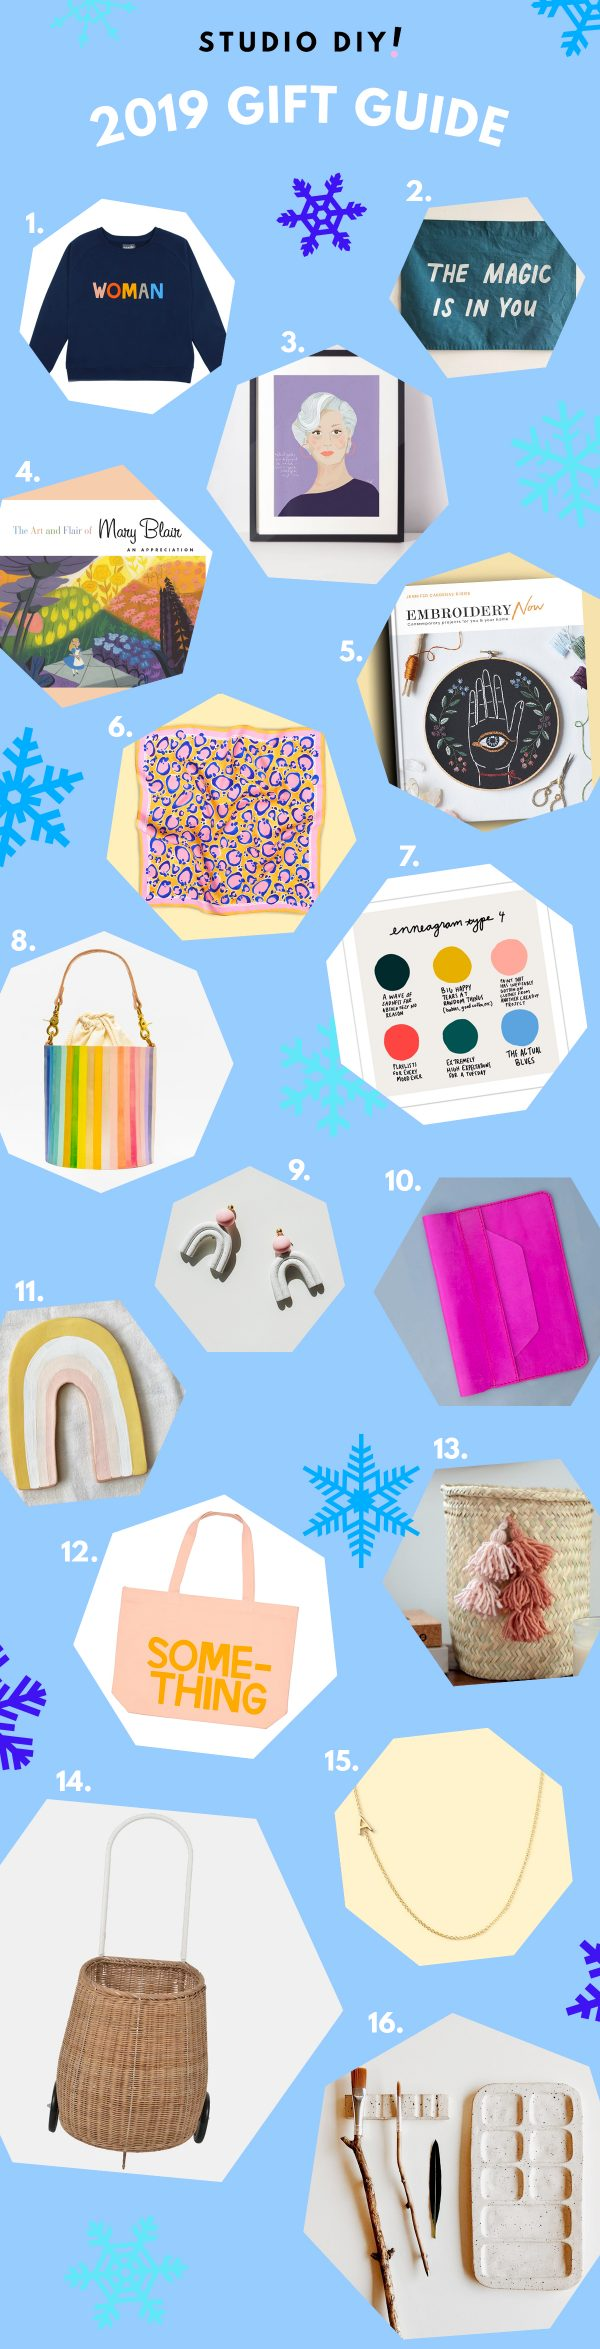 2019 Unique and Colorful Gift Guide Ideas